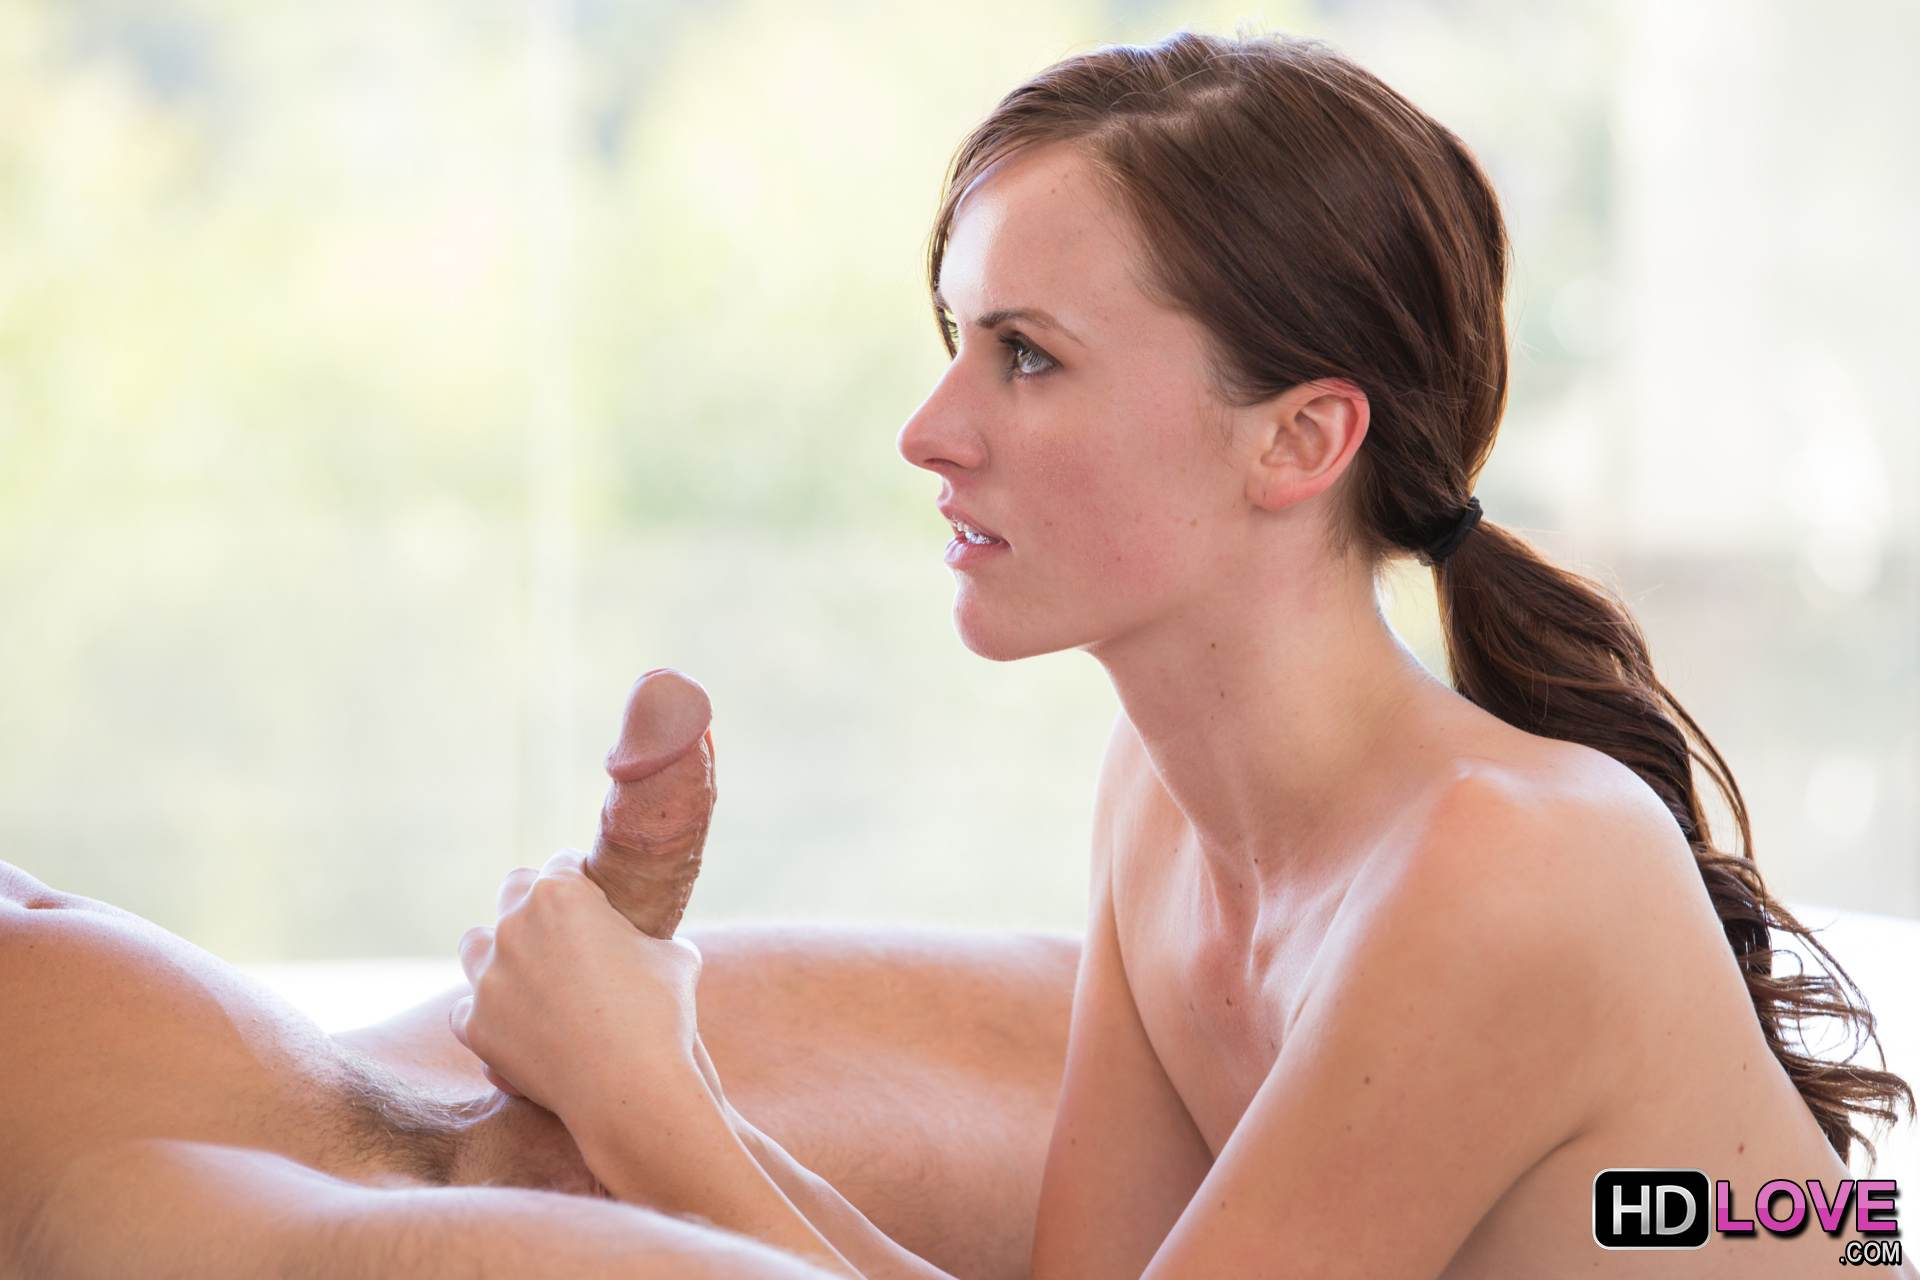 Teen massage hd decide your own fate 6